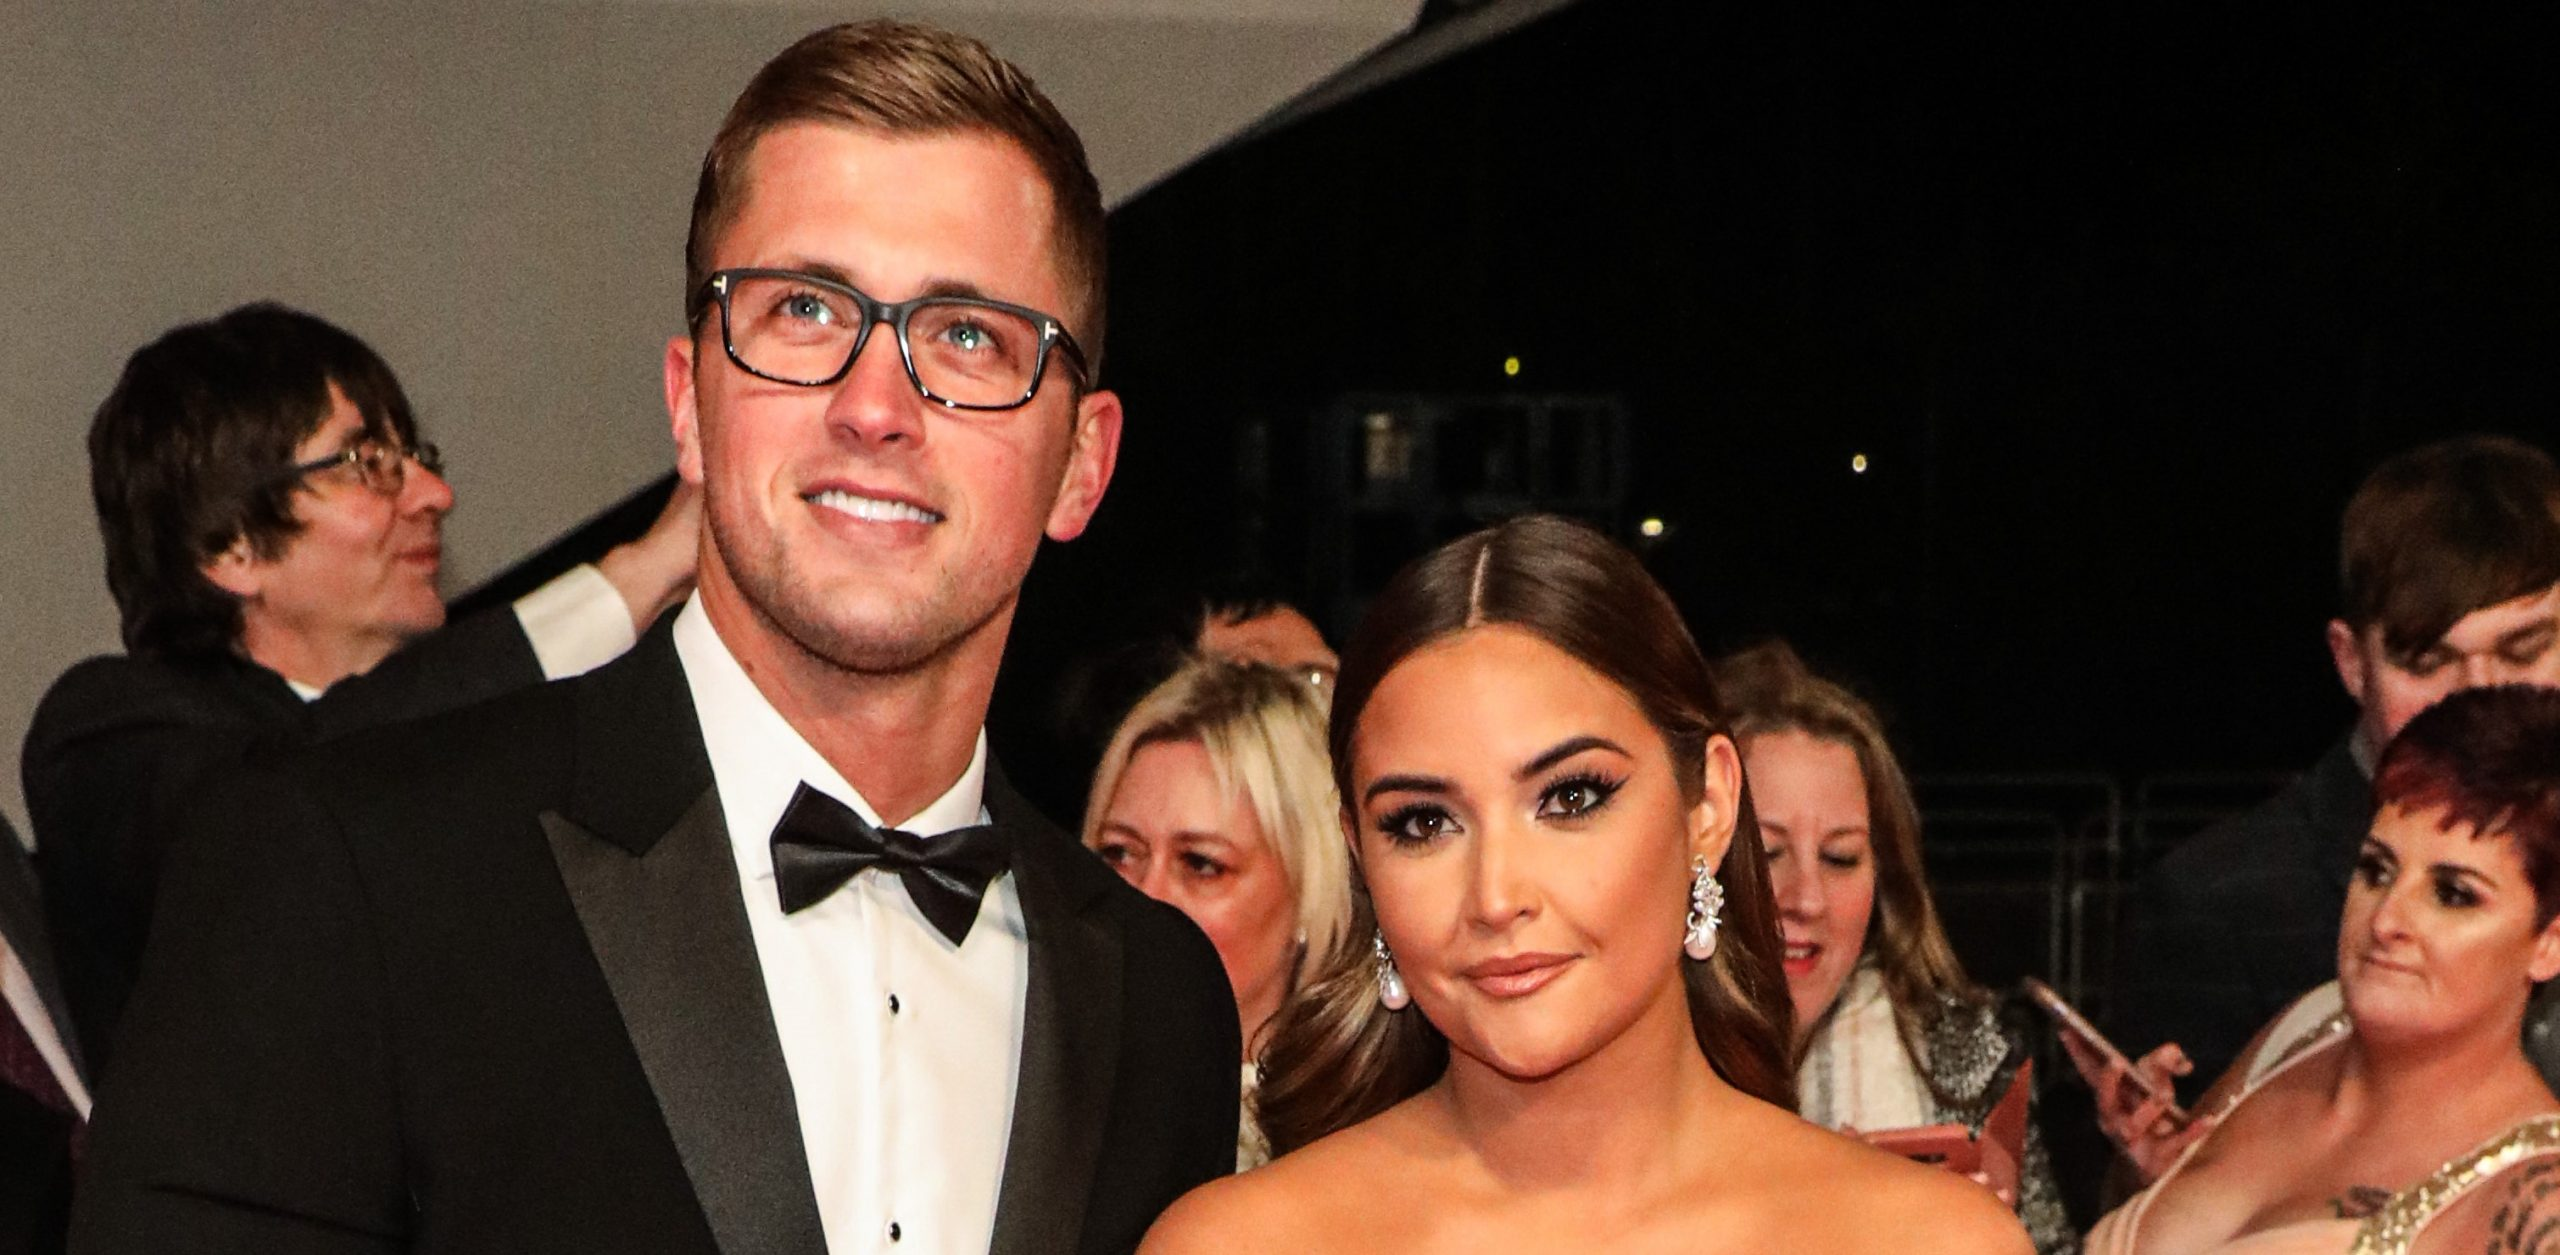 Dan Osborne and Jacqueline Jossa slam claims they had 'furious row' at her fashion line launch